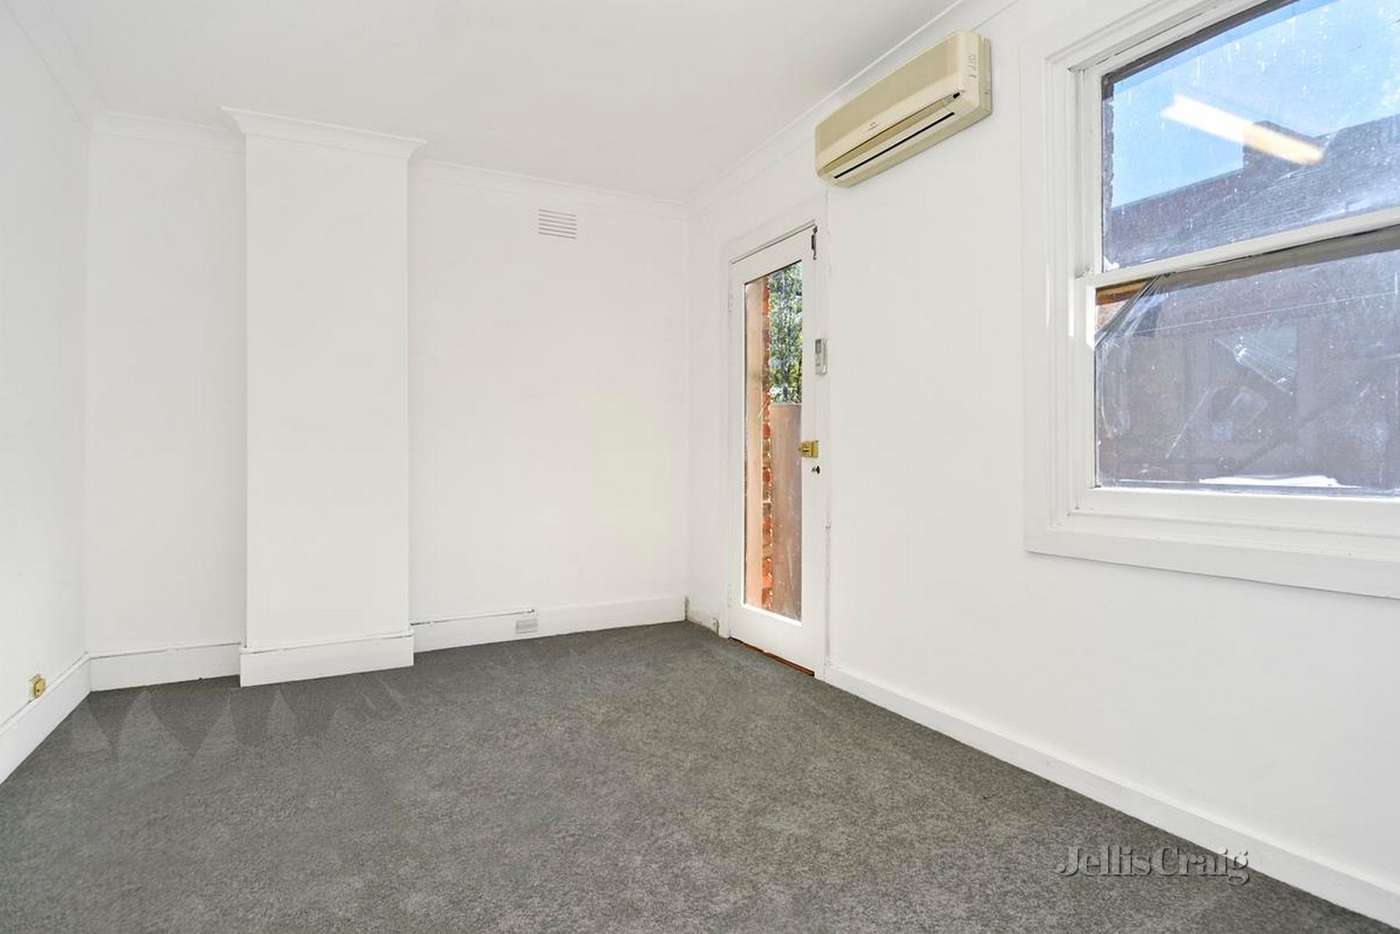 Fifth view of Homely house listing, 33 Cobden Street, North Melbourne VIC 3051